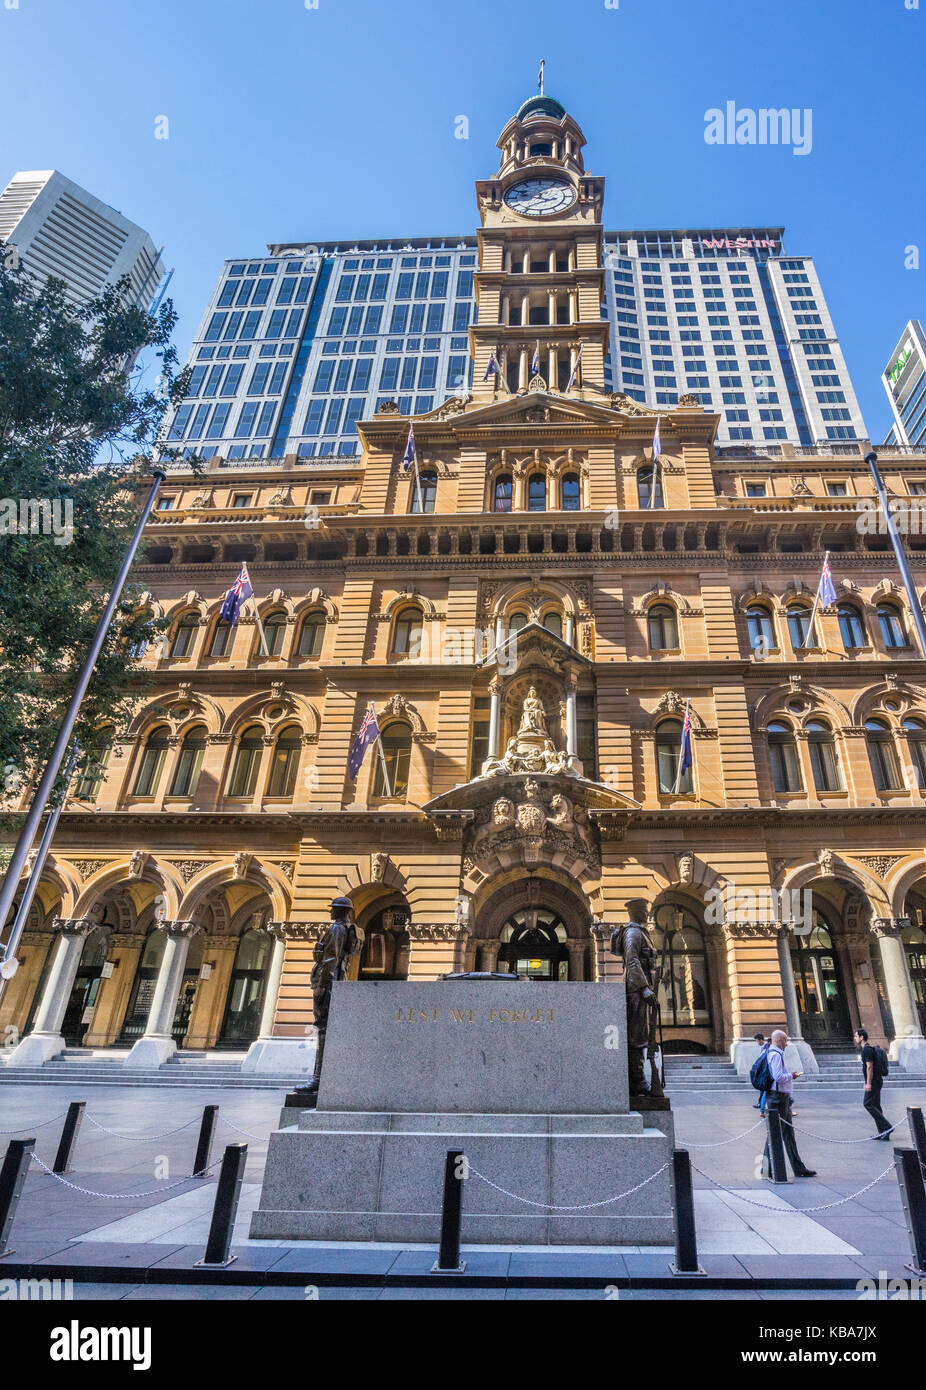 Australia, New South Wales, Sydney, Martin Place, The Cenotaph War Memorial with view of the sandstone facade of - Stock Image